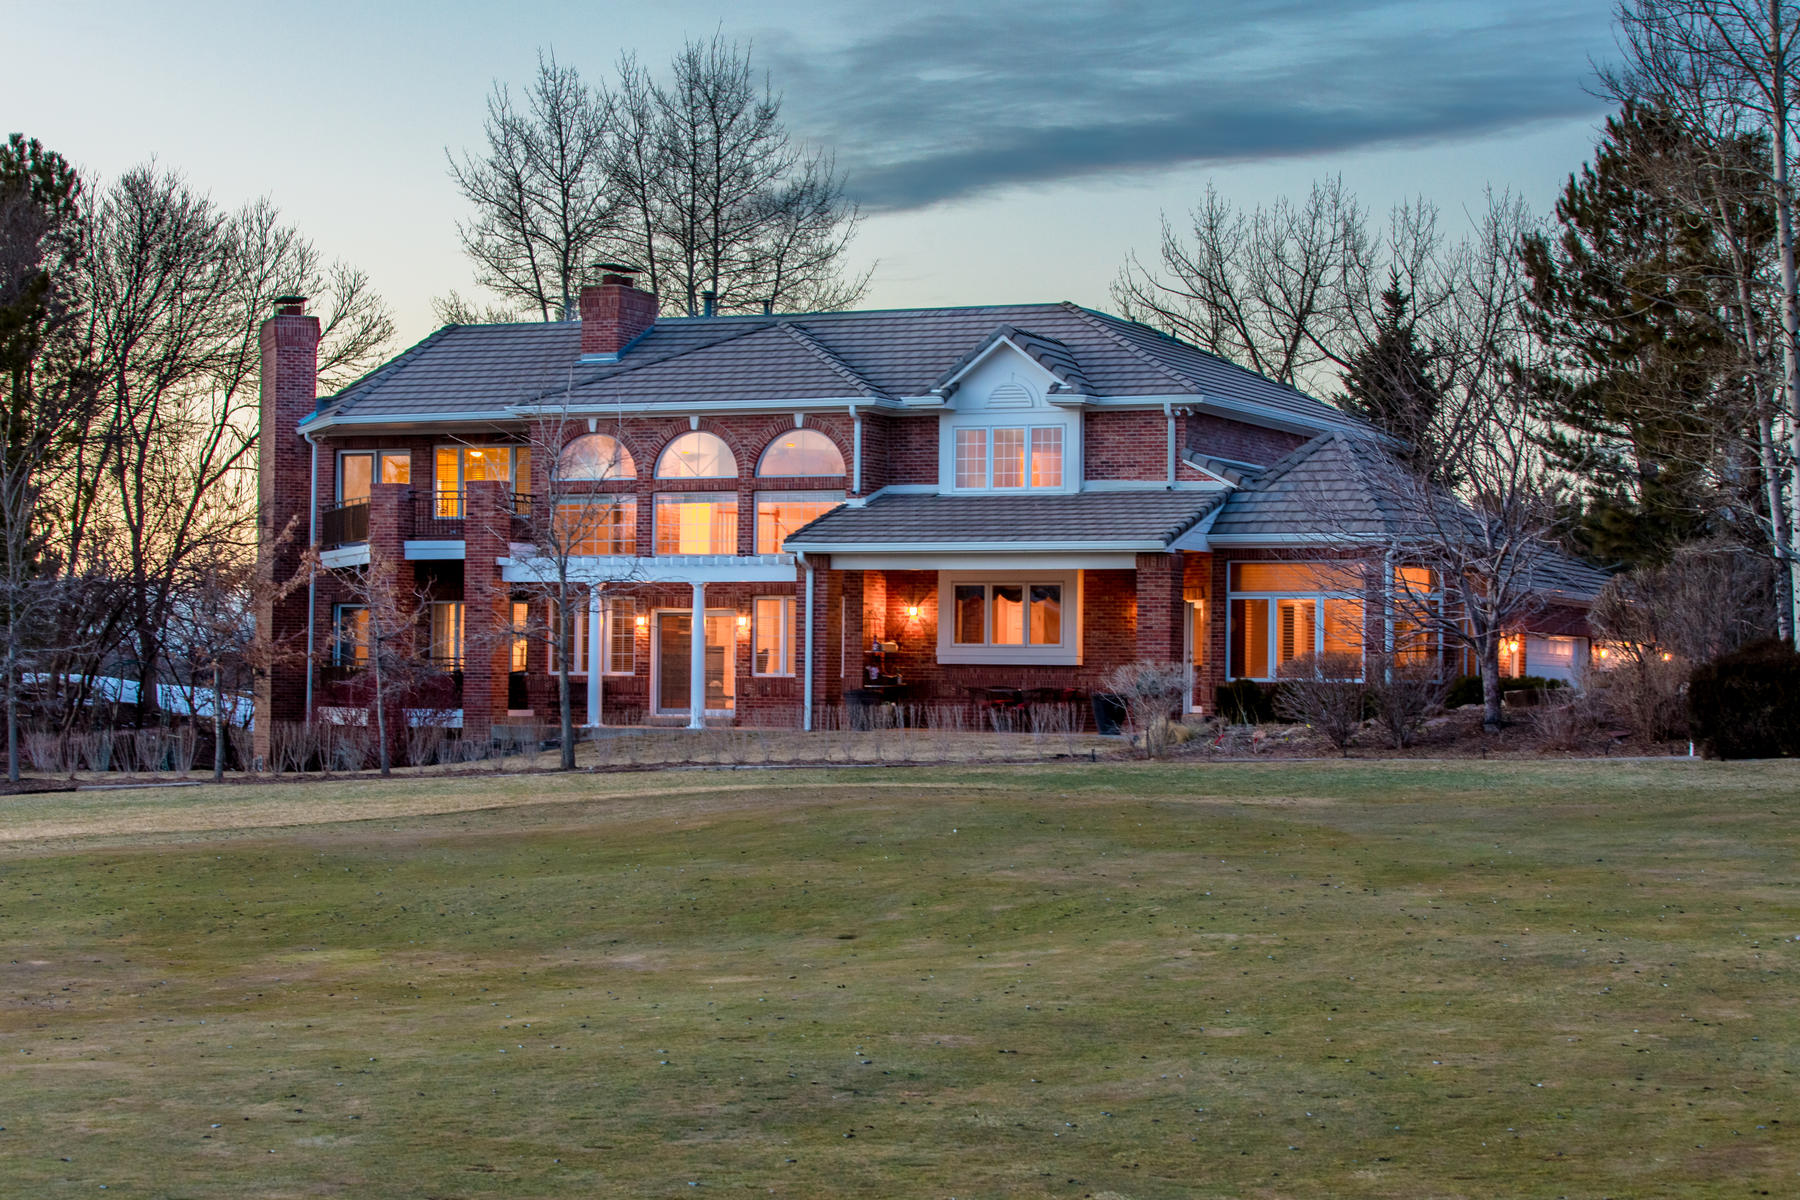 Single Family Home for Active at Spectacular Waterfront & Golf Course Setting 71 Glenmoor Drive Cherry Hills Village, Colorado 80113 United States